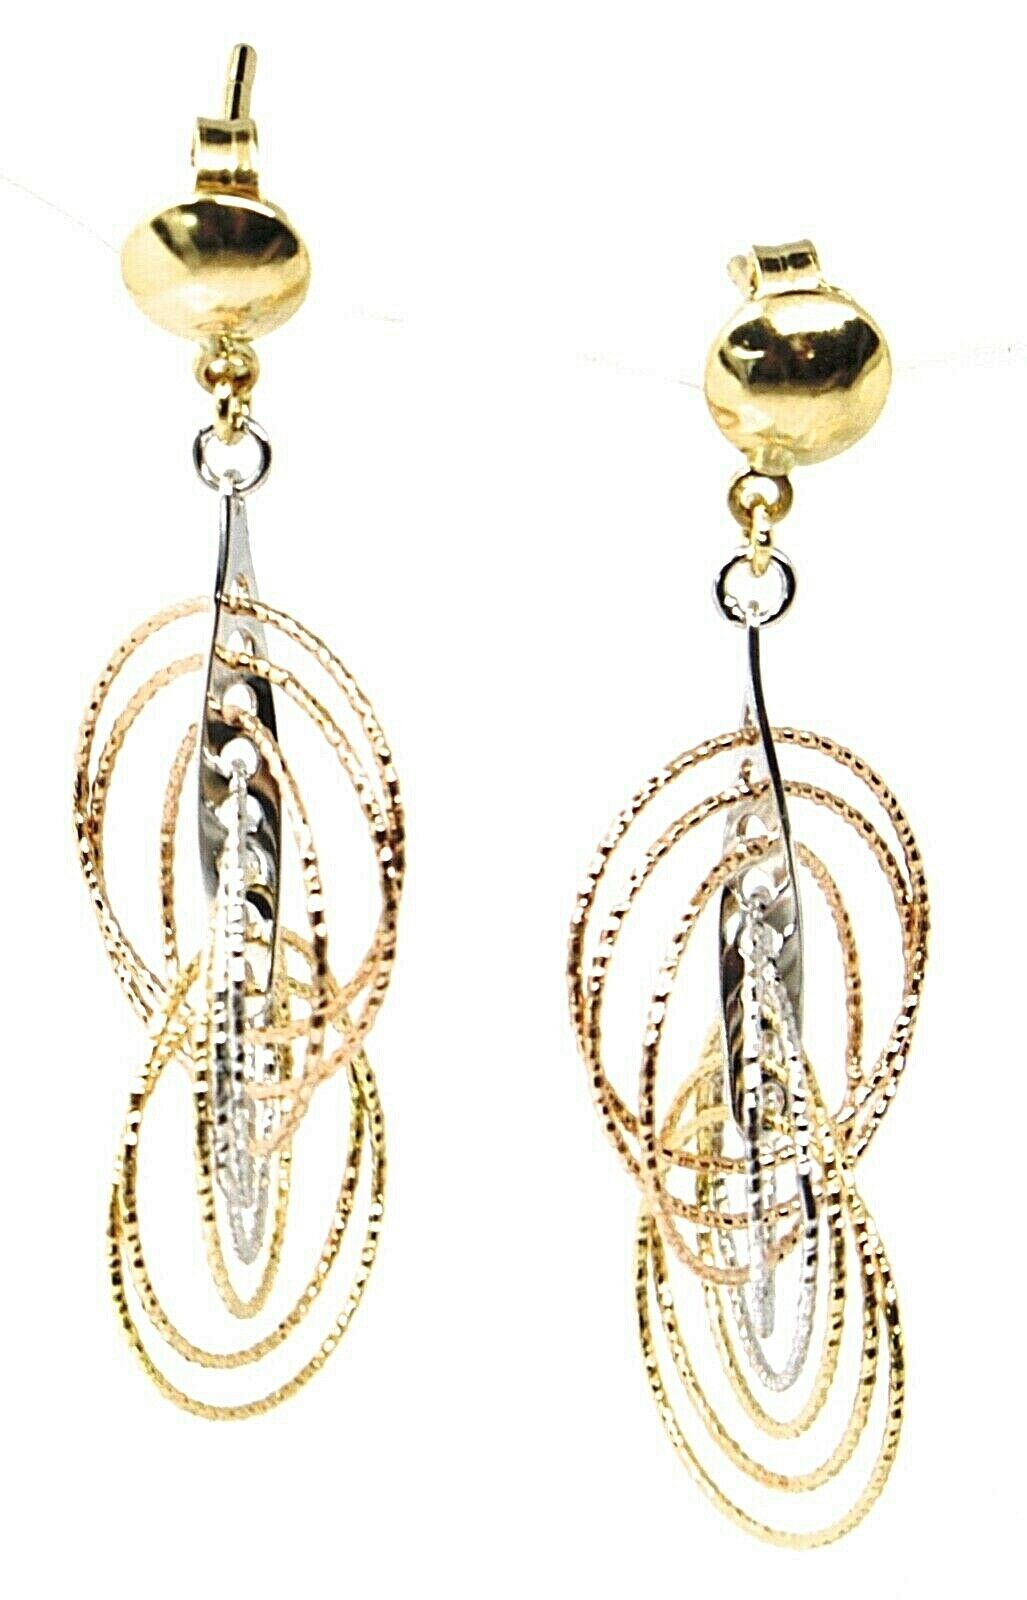 18K YELLOW WHITE ROSE GOLD PENDANT EARRINGS MULTIPLE WORKED CIRCLES SPIRAL 4cm,